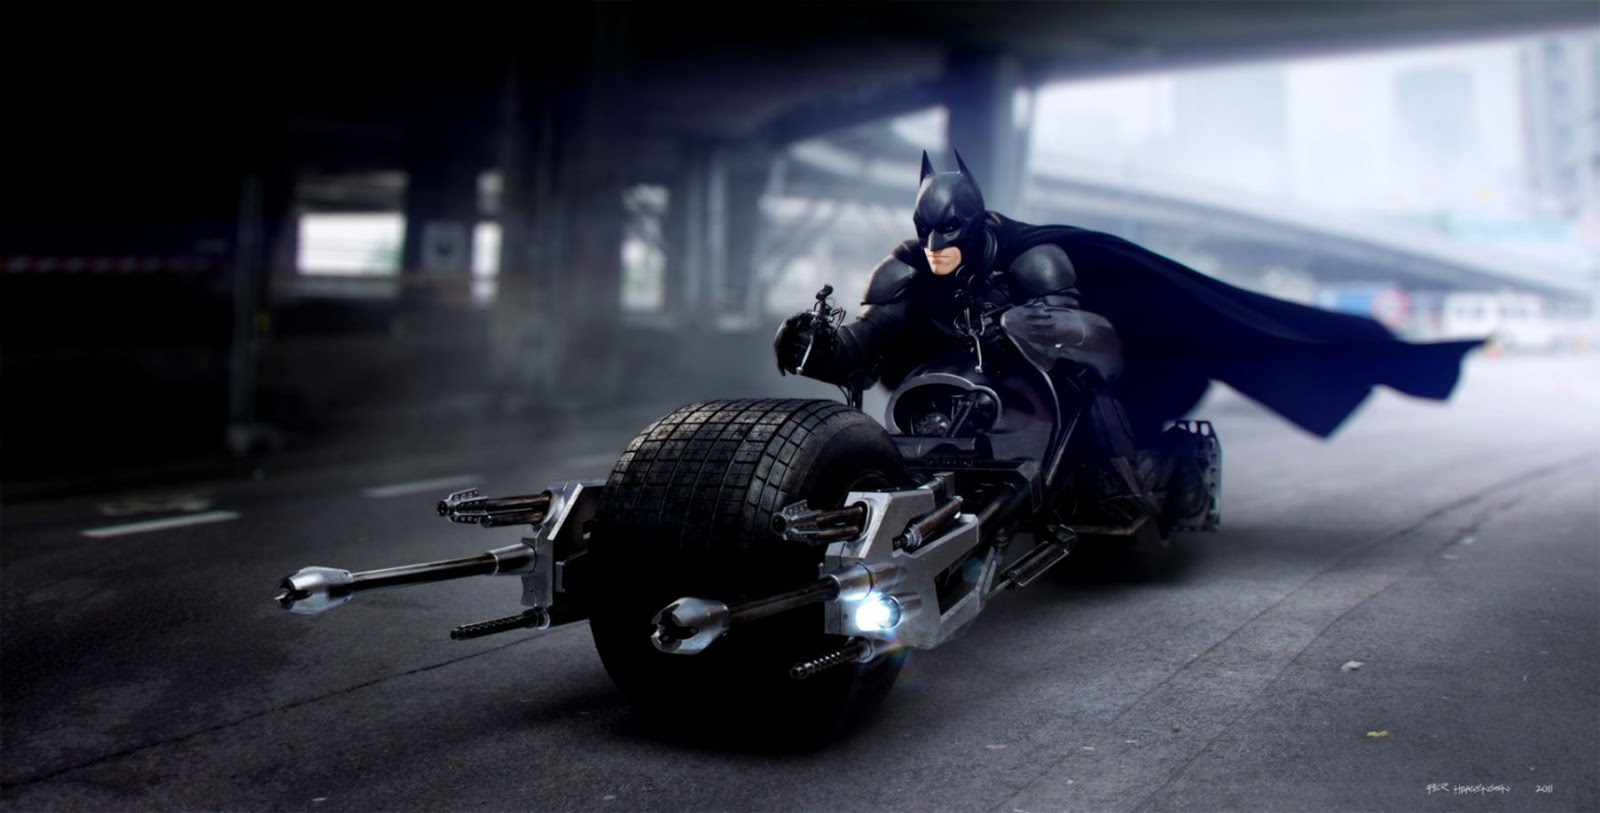 Dark Knight Rises Batman Bat Pod Wallpaper Wallpapers Craft 1600x813